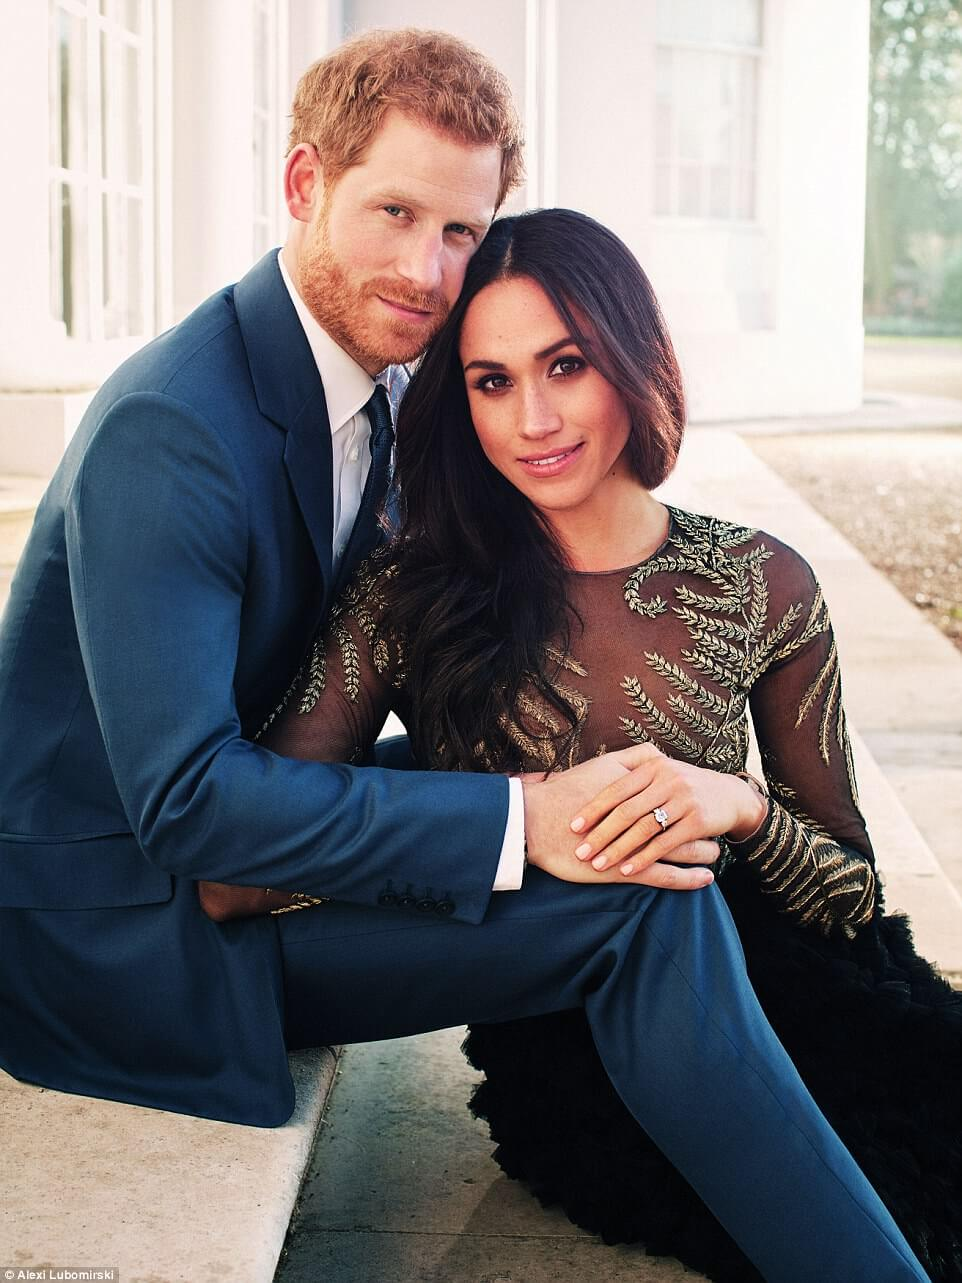 prince harry meghan markle engagment photos 2 (1)